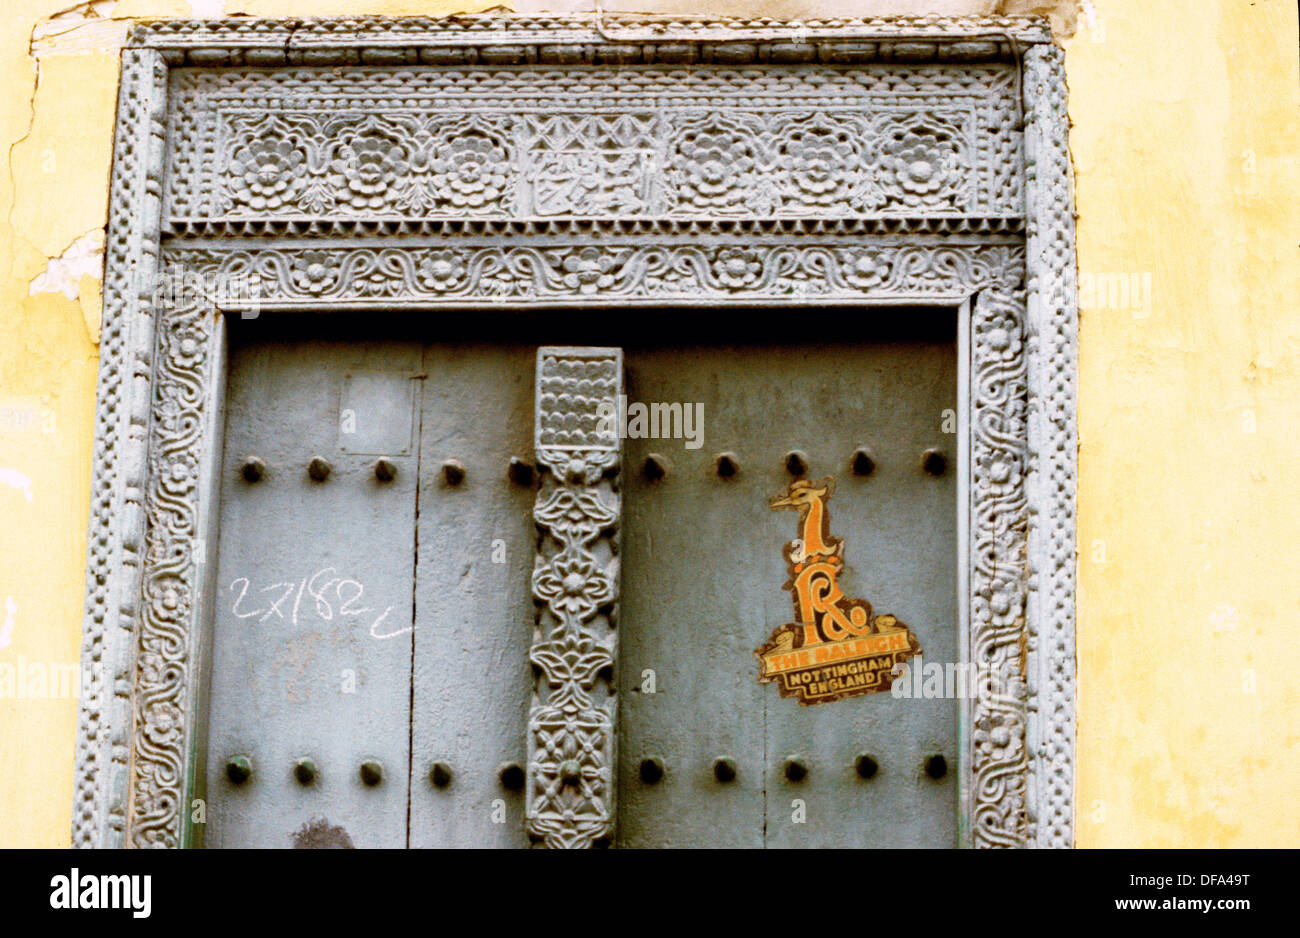 A RICHLY CARVED DOORWAY IN ZANZIBAR TANZANIA - Stock Image